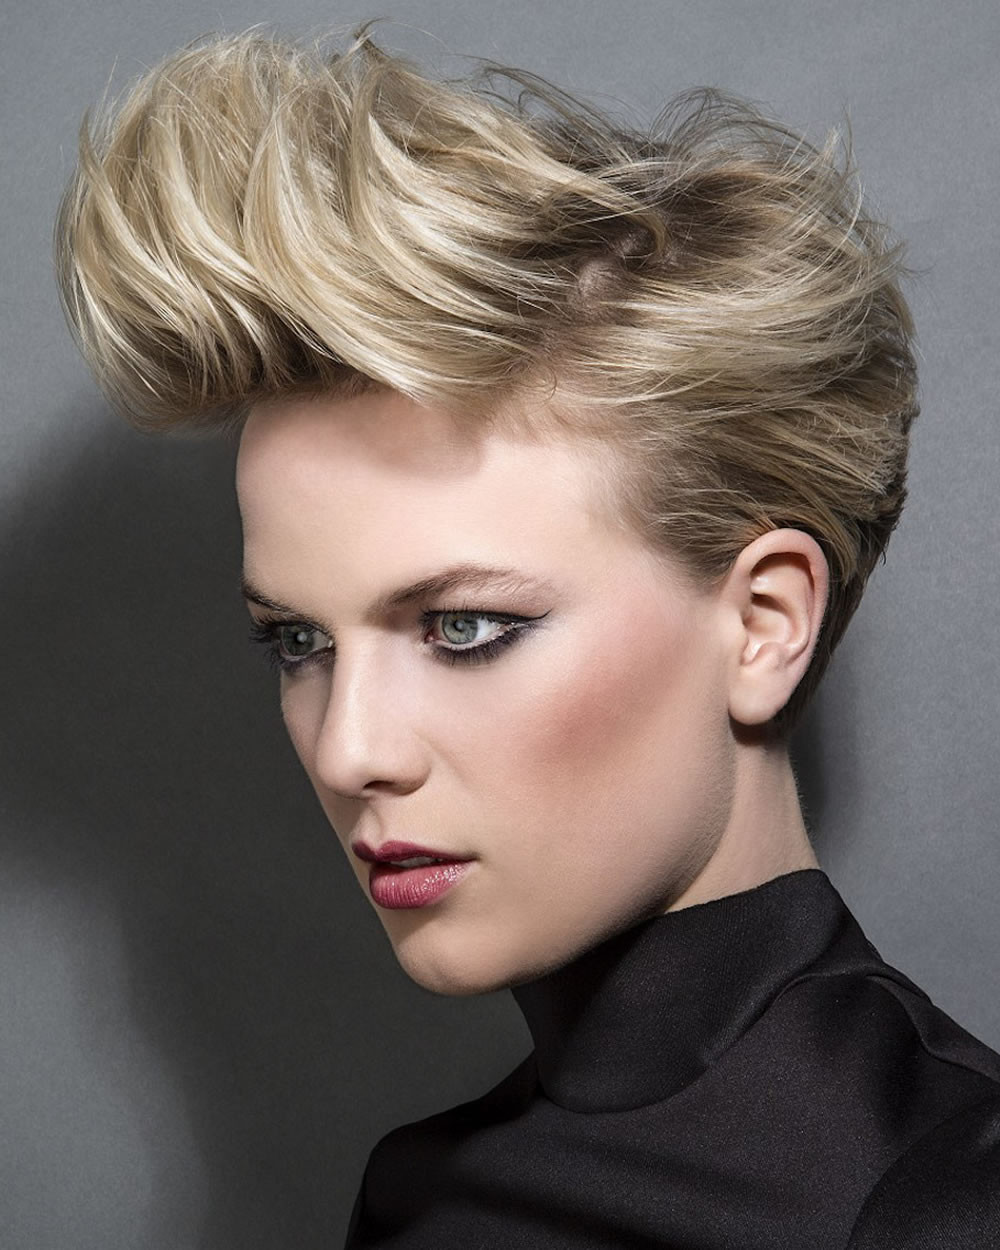 Hairstyles For Short Haircuts  2018 Hairstyles for Short Hair & Easy Fast Pixie and Bob